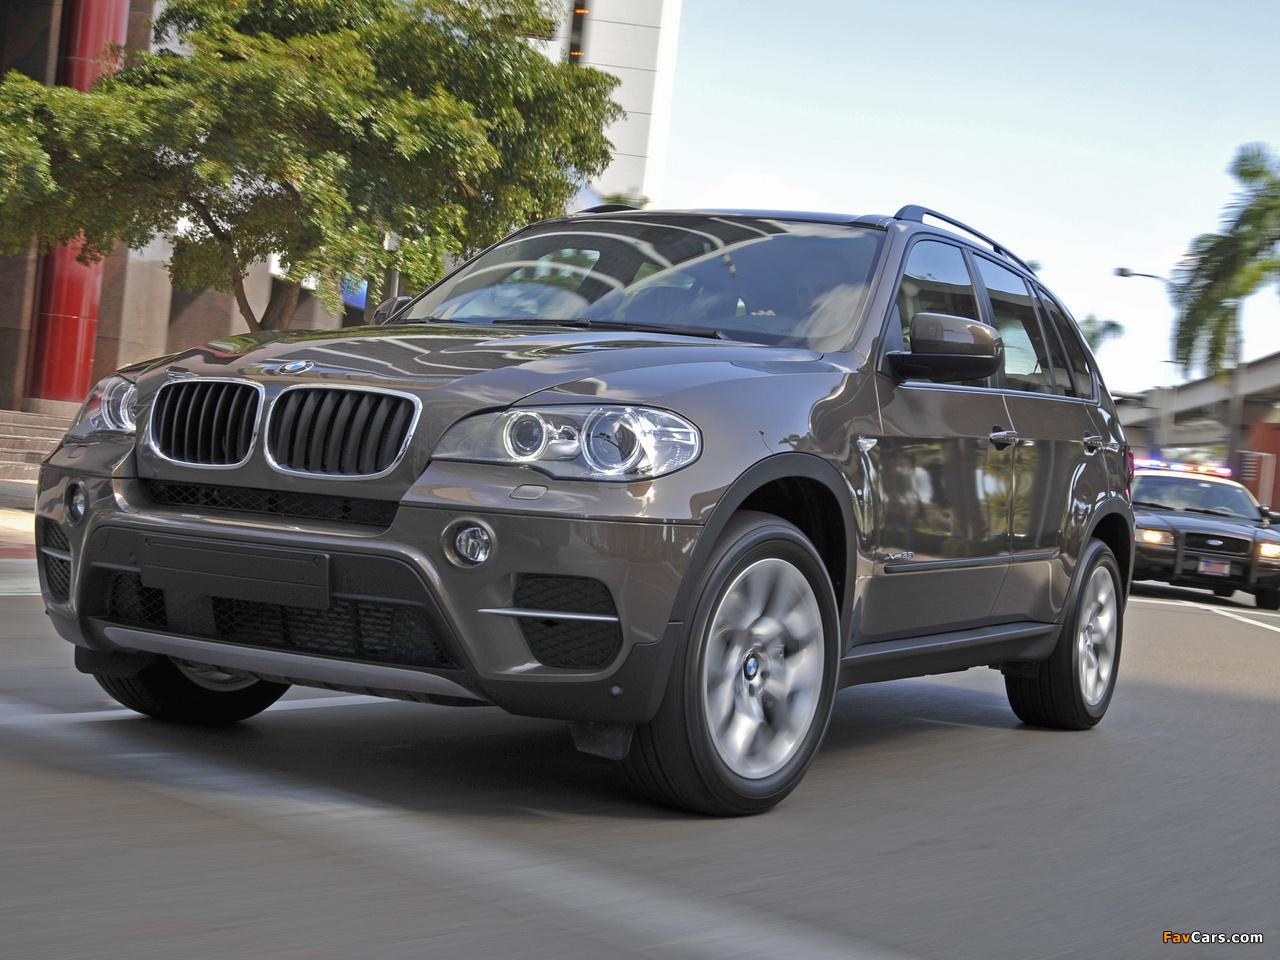 Wallpapers Of Bmw X5 Xdrive35i E70 2010 1280x960